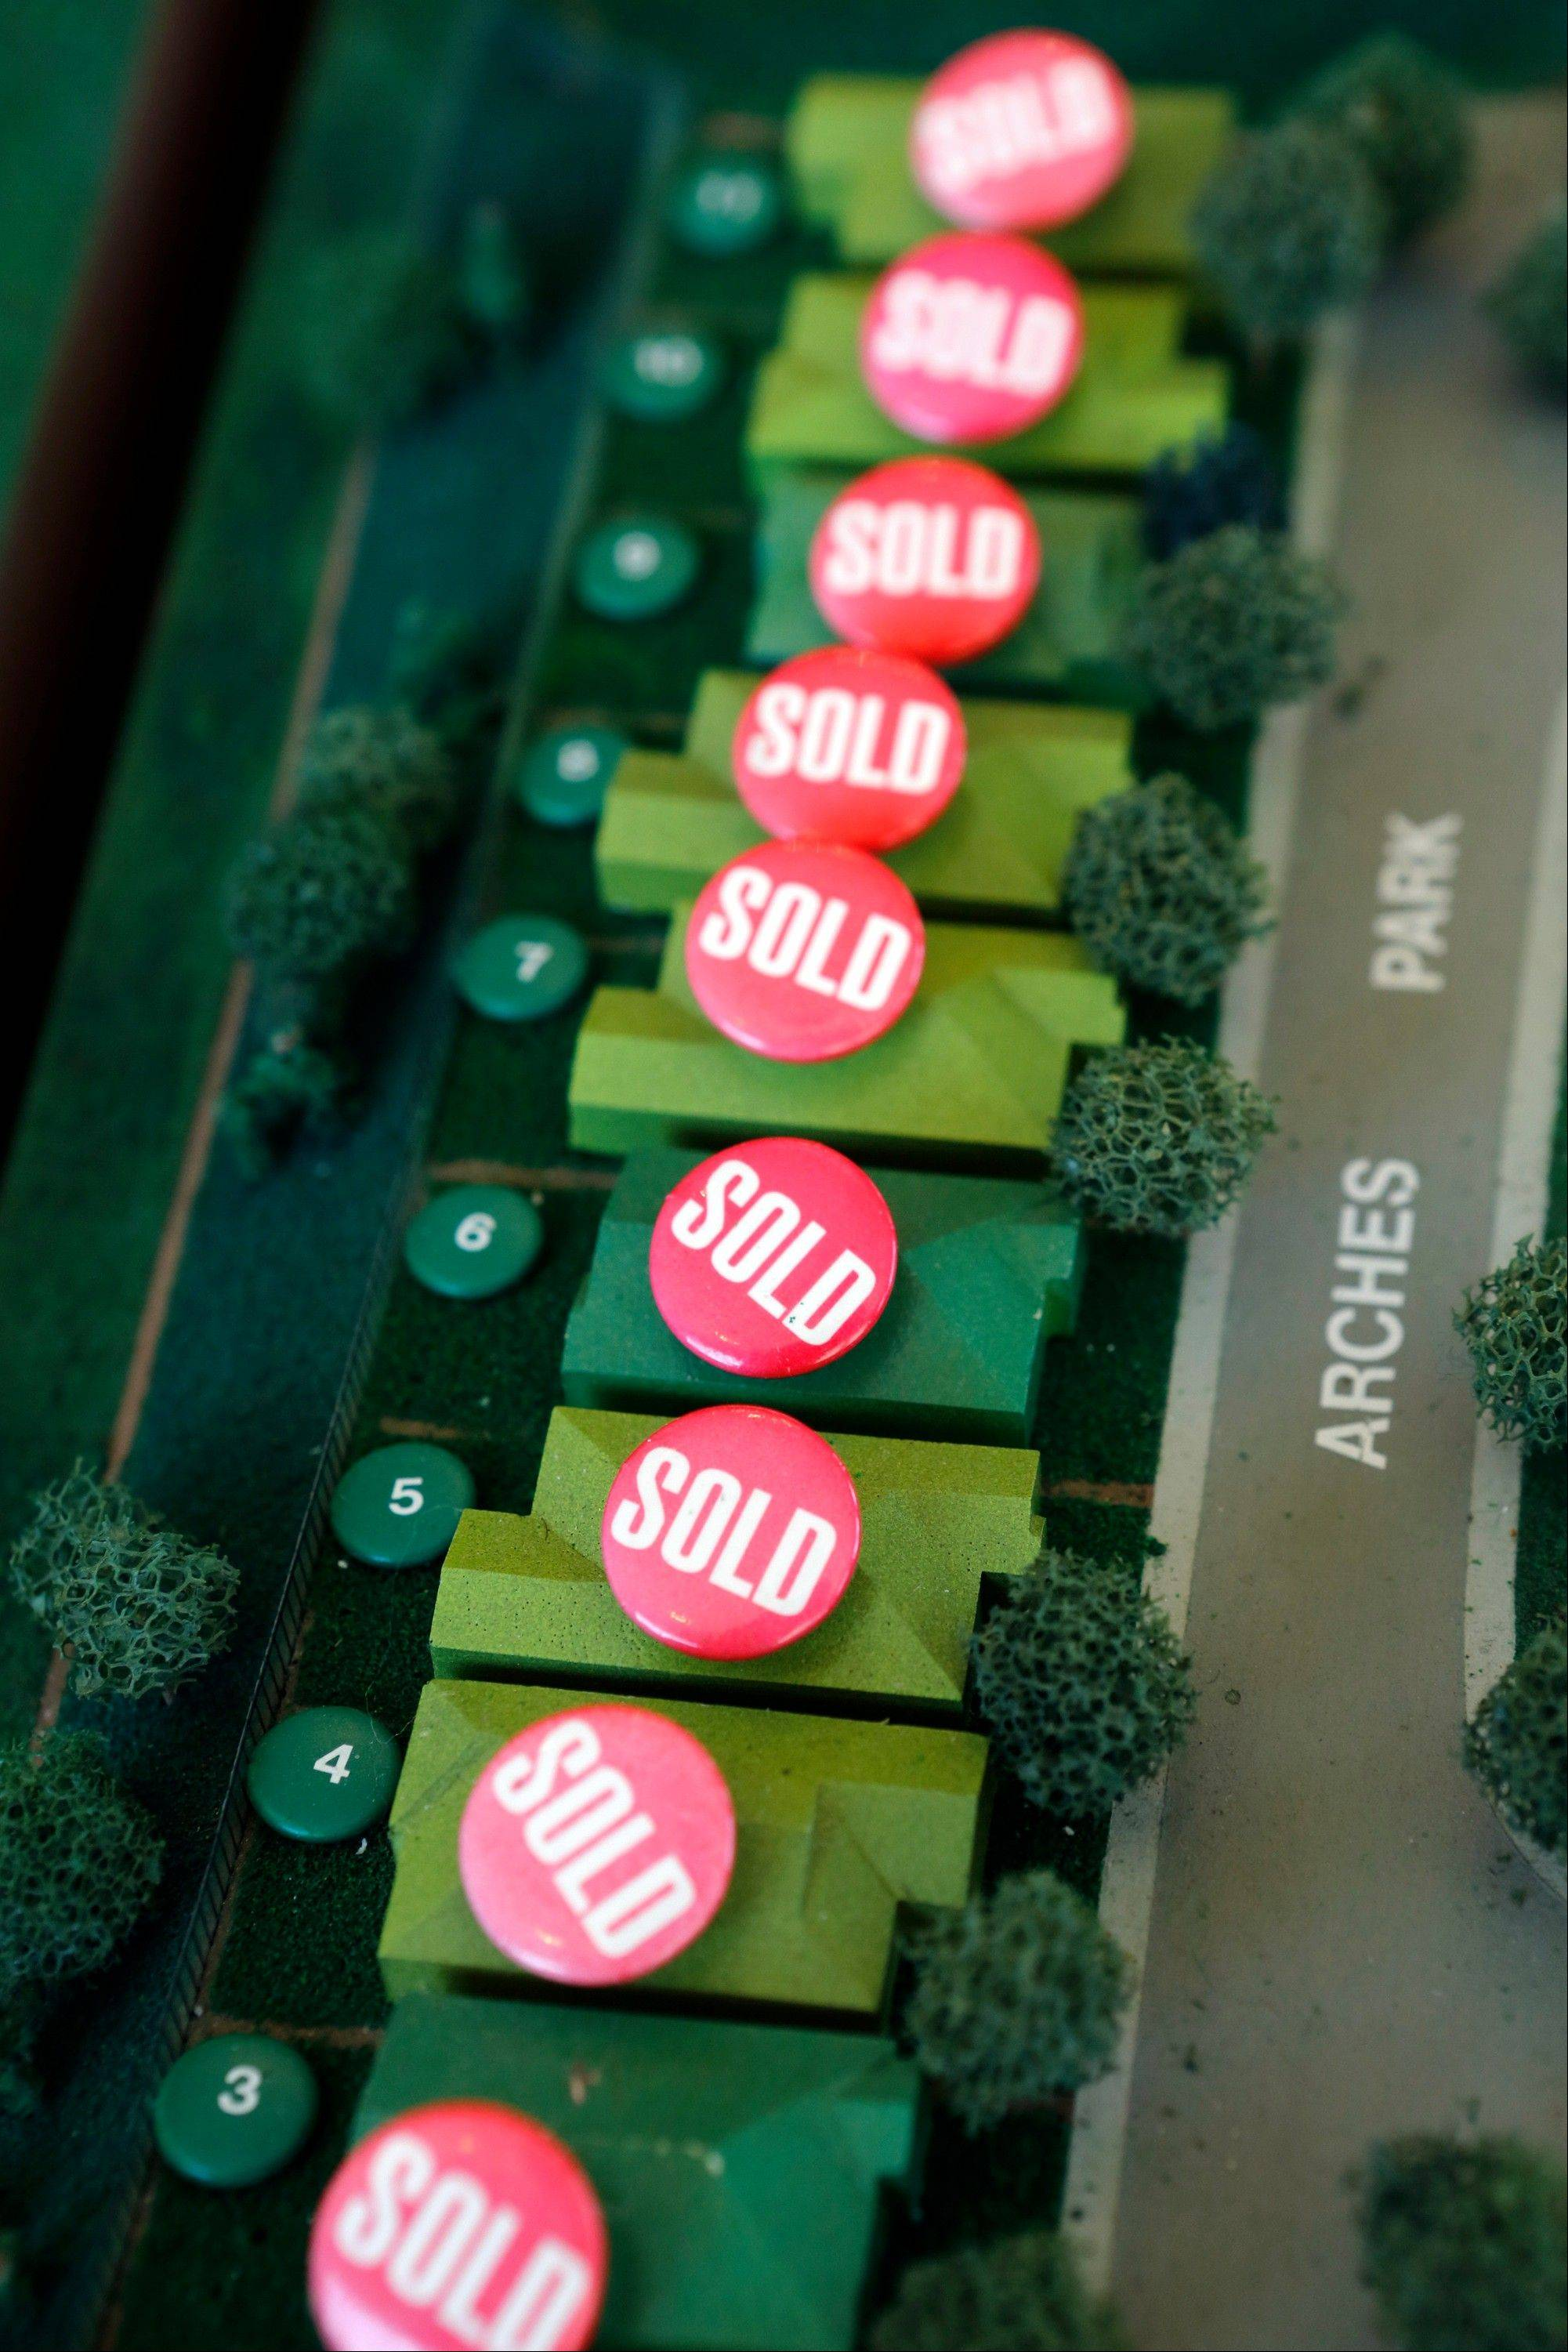 Homes that have been sold are marked with buttons on a model in the sales office of Hovnanian Enterprises Inc.�s Four Seasons housing development in Beaumont, California.